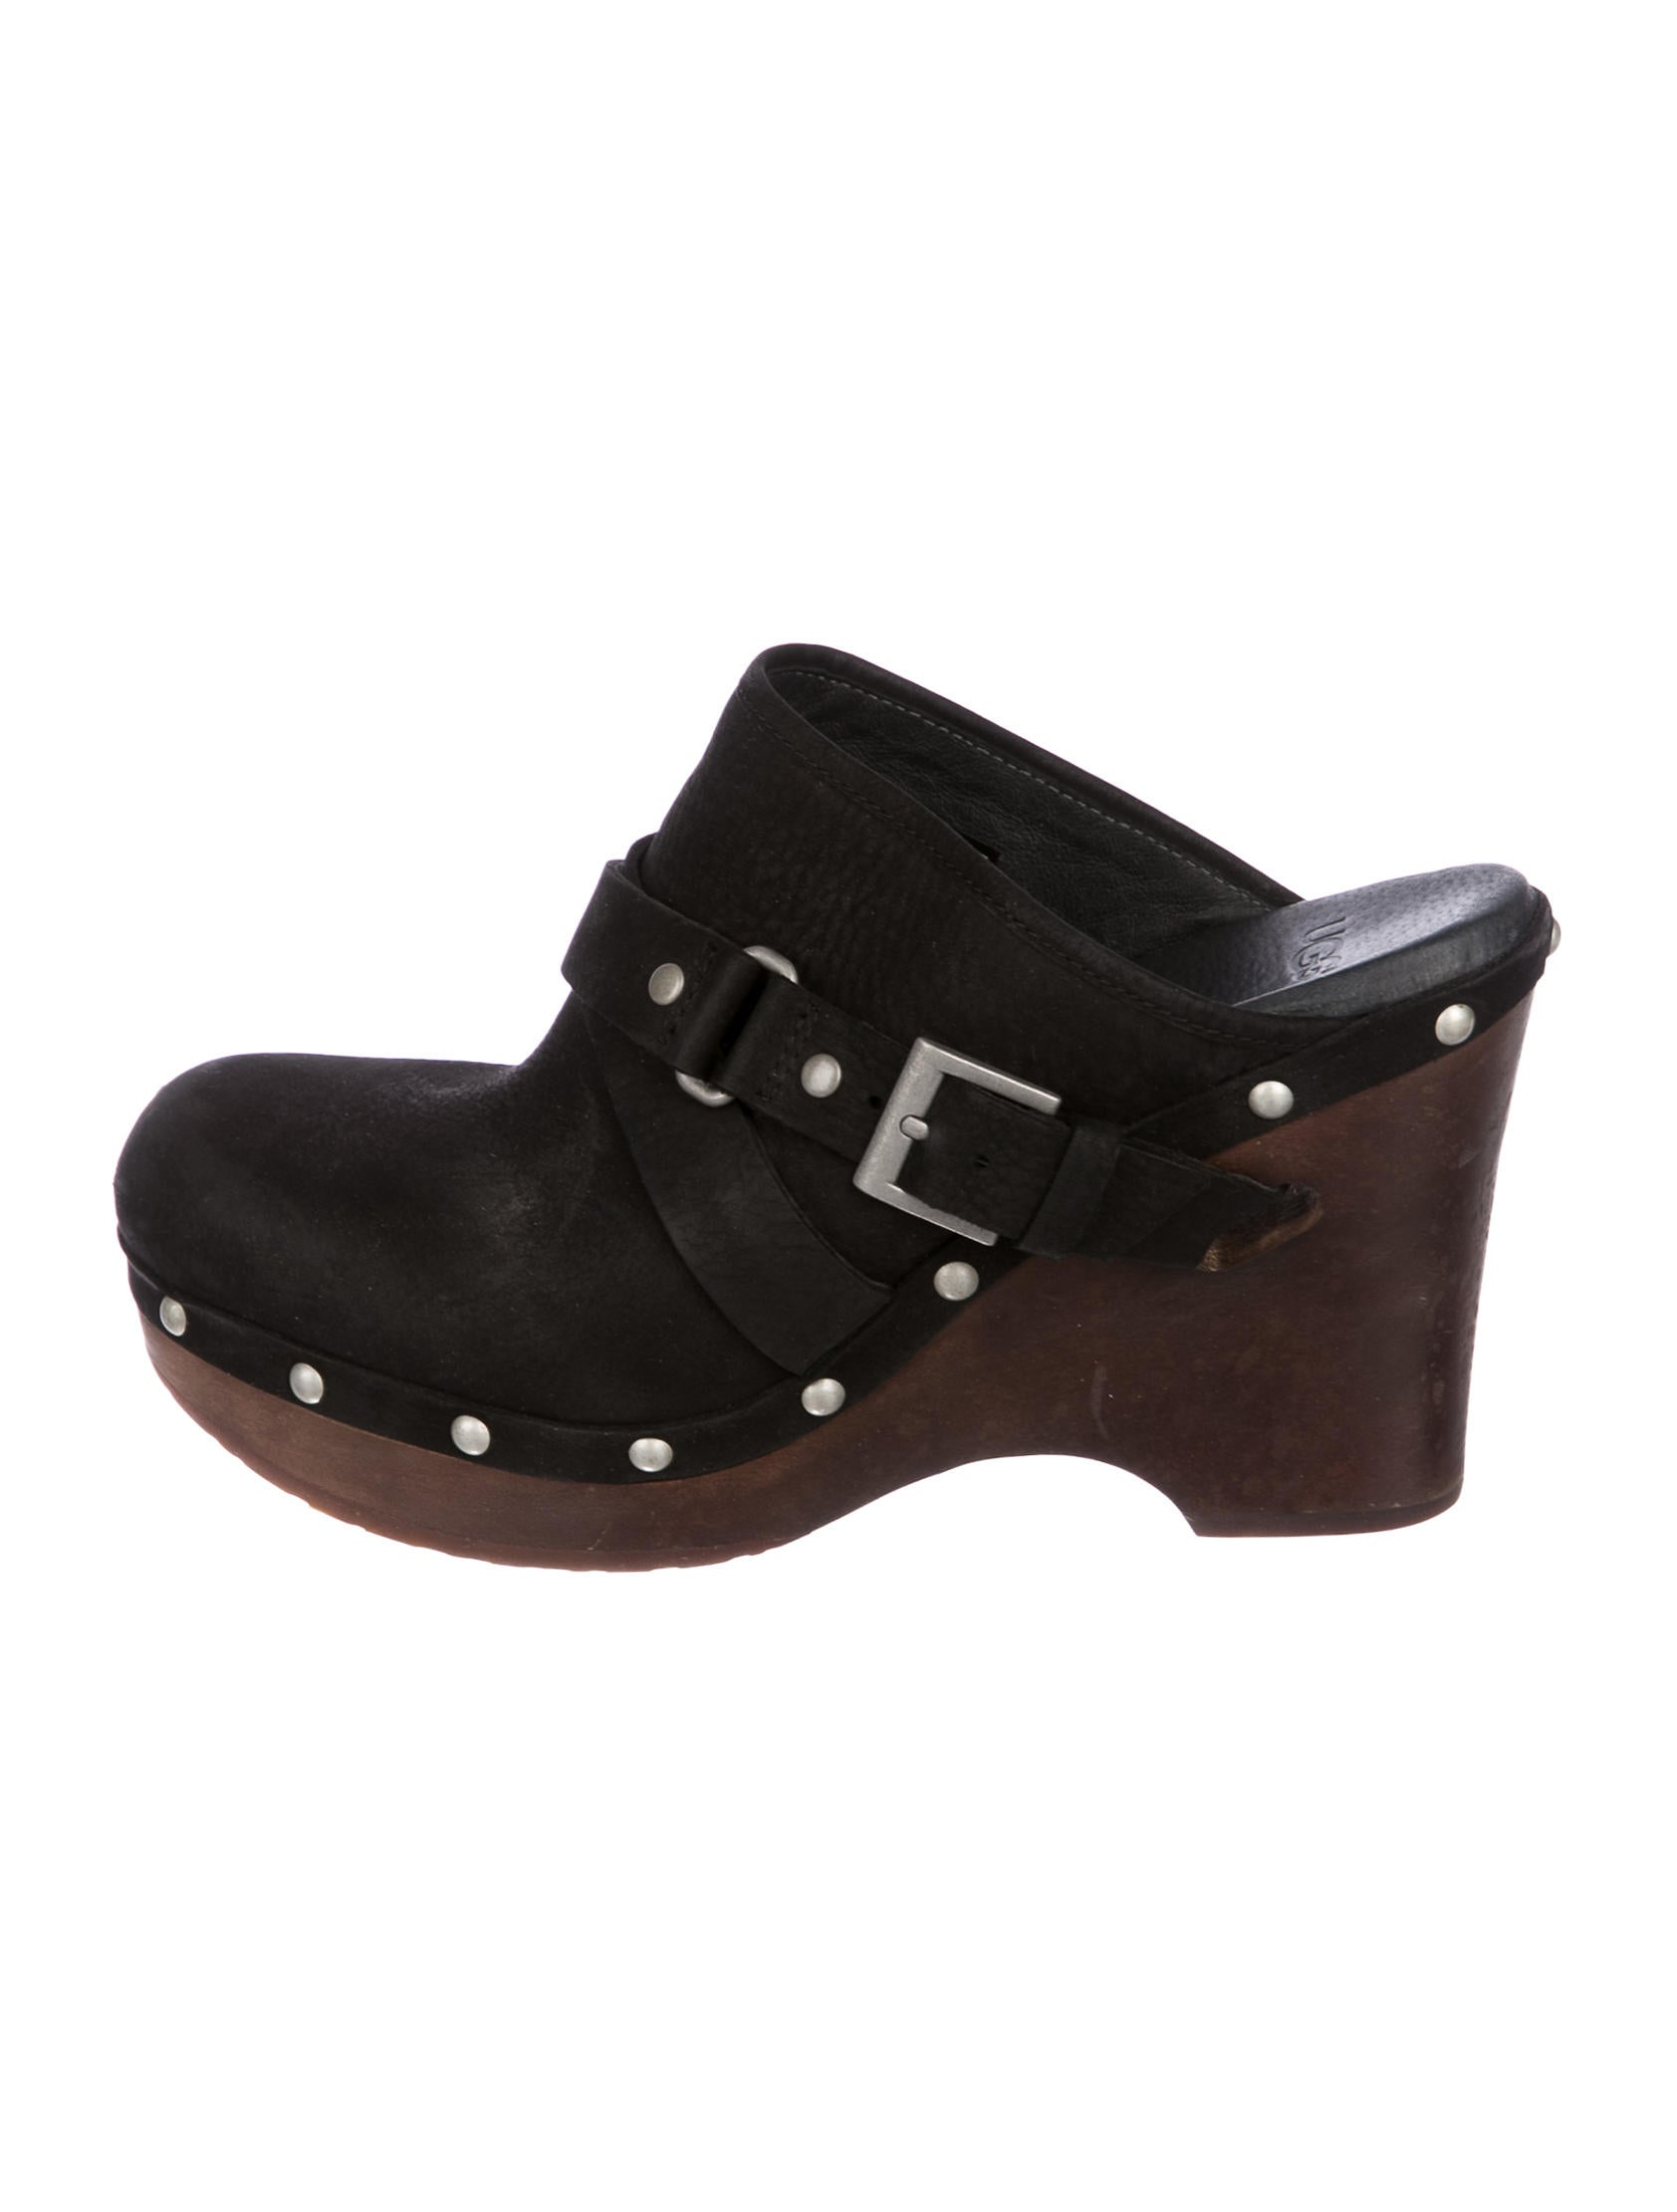 cheap discounts UGG Australia Leather Natalee Clogs discount Cheapest with mastercard cheap online 9jAgCOx